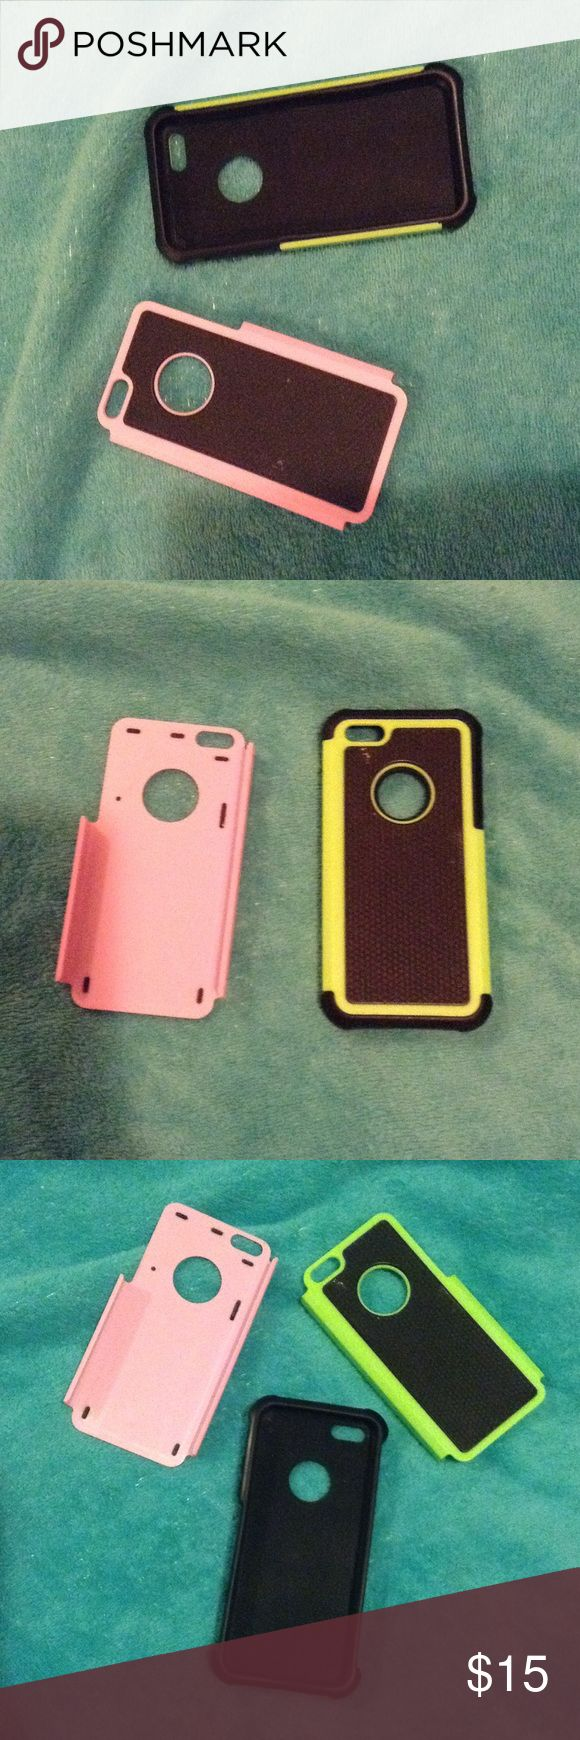 3 piece IPhone 5/5s case set a 3 piece iPhone 5s/5 case, a pink & green cover case with a black inside case, no damage & good coverage apple Other